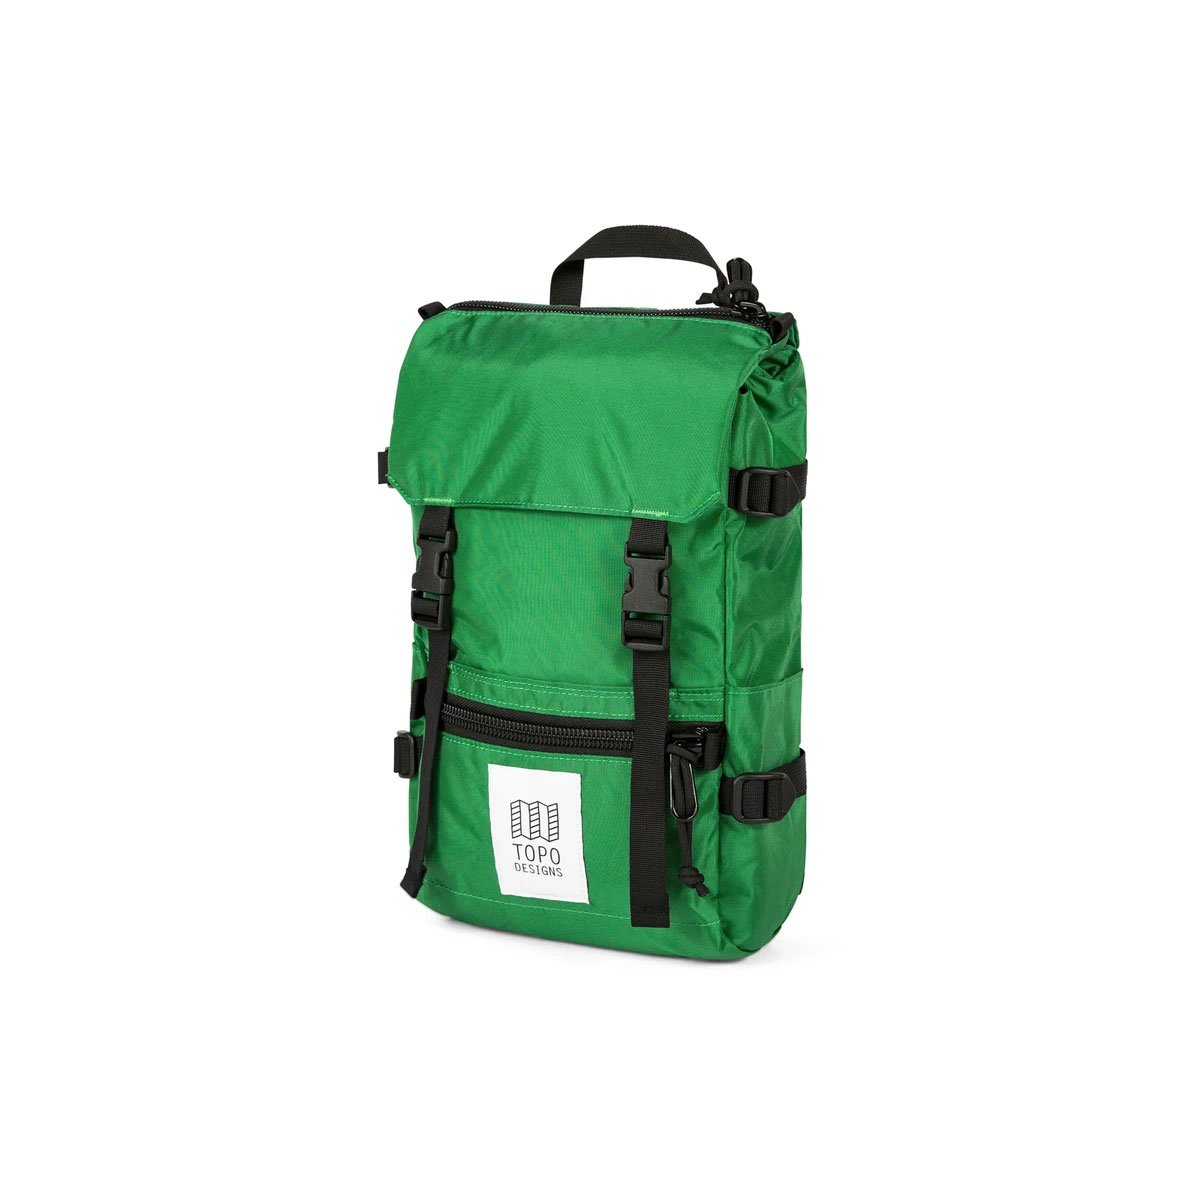 Topo Designs : Rover Pack Mini : Green